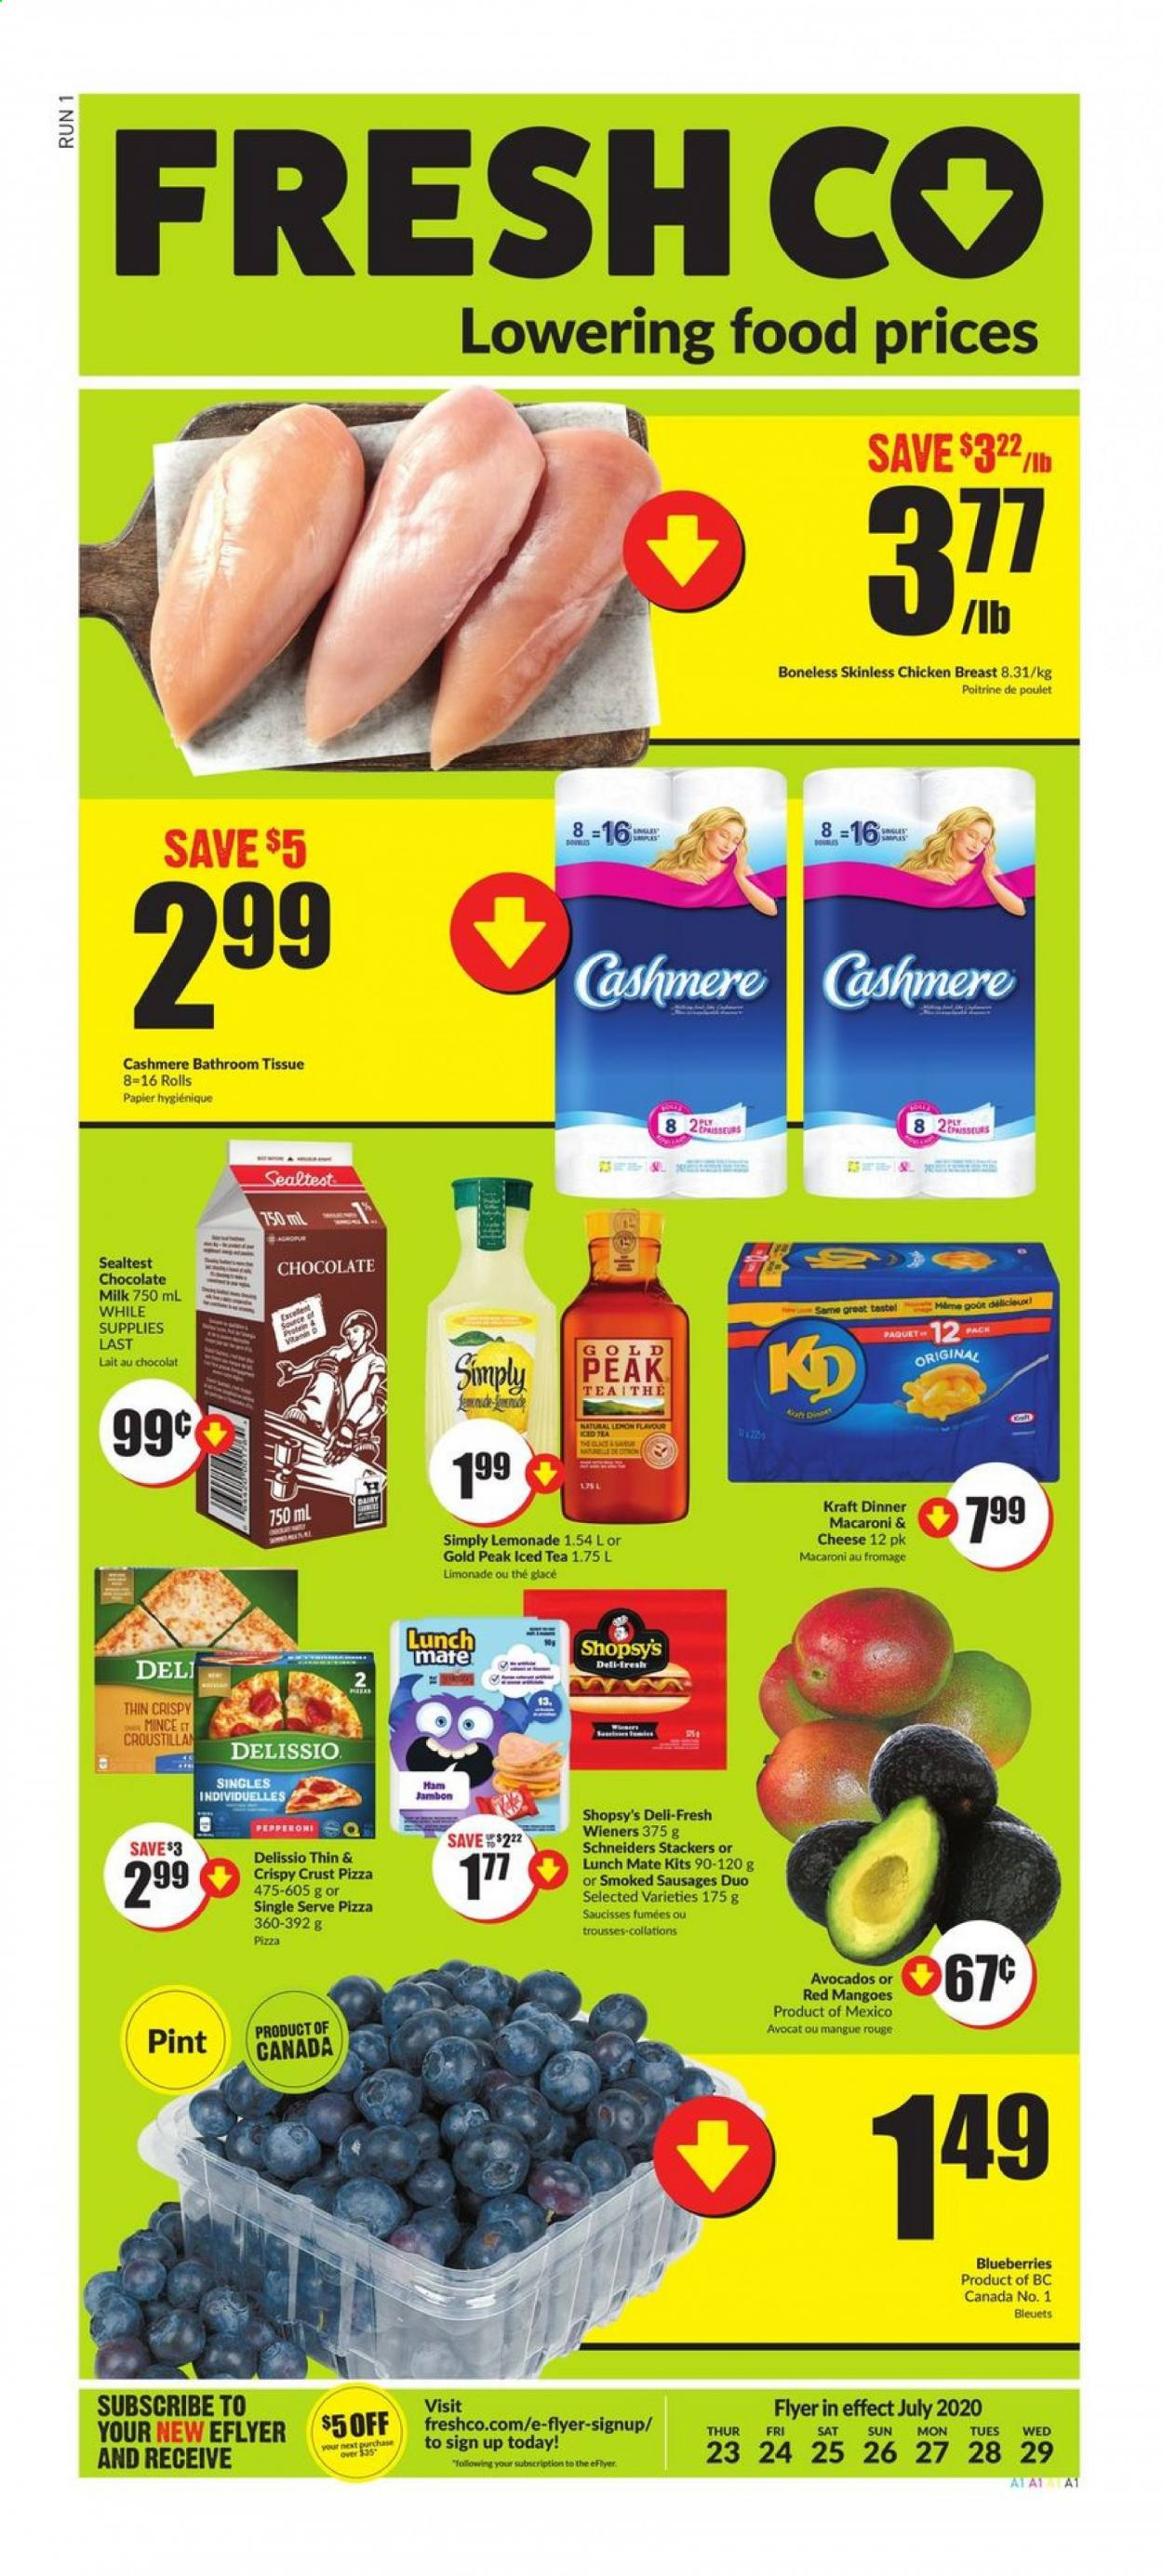 FreshCo. Flyer - July 23, 2020 - July 29, 2020 - Sales products - avocado, blueberries, lemonade, macaroni & cheese, mango, mate, milk, sausages, tea, ham, pizza, chicken, chicken breast, chocolate milk, chocolate, cheese, macaroni, iced tea, poulet, chocolat, lait, avocat, jambon, fromage, glace, thé, mangue, papier, saucisse, rouge. Page 1.